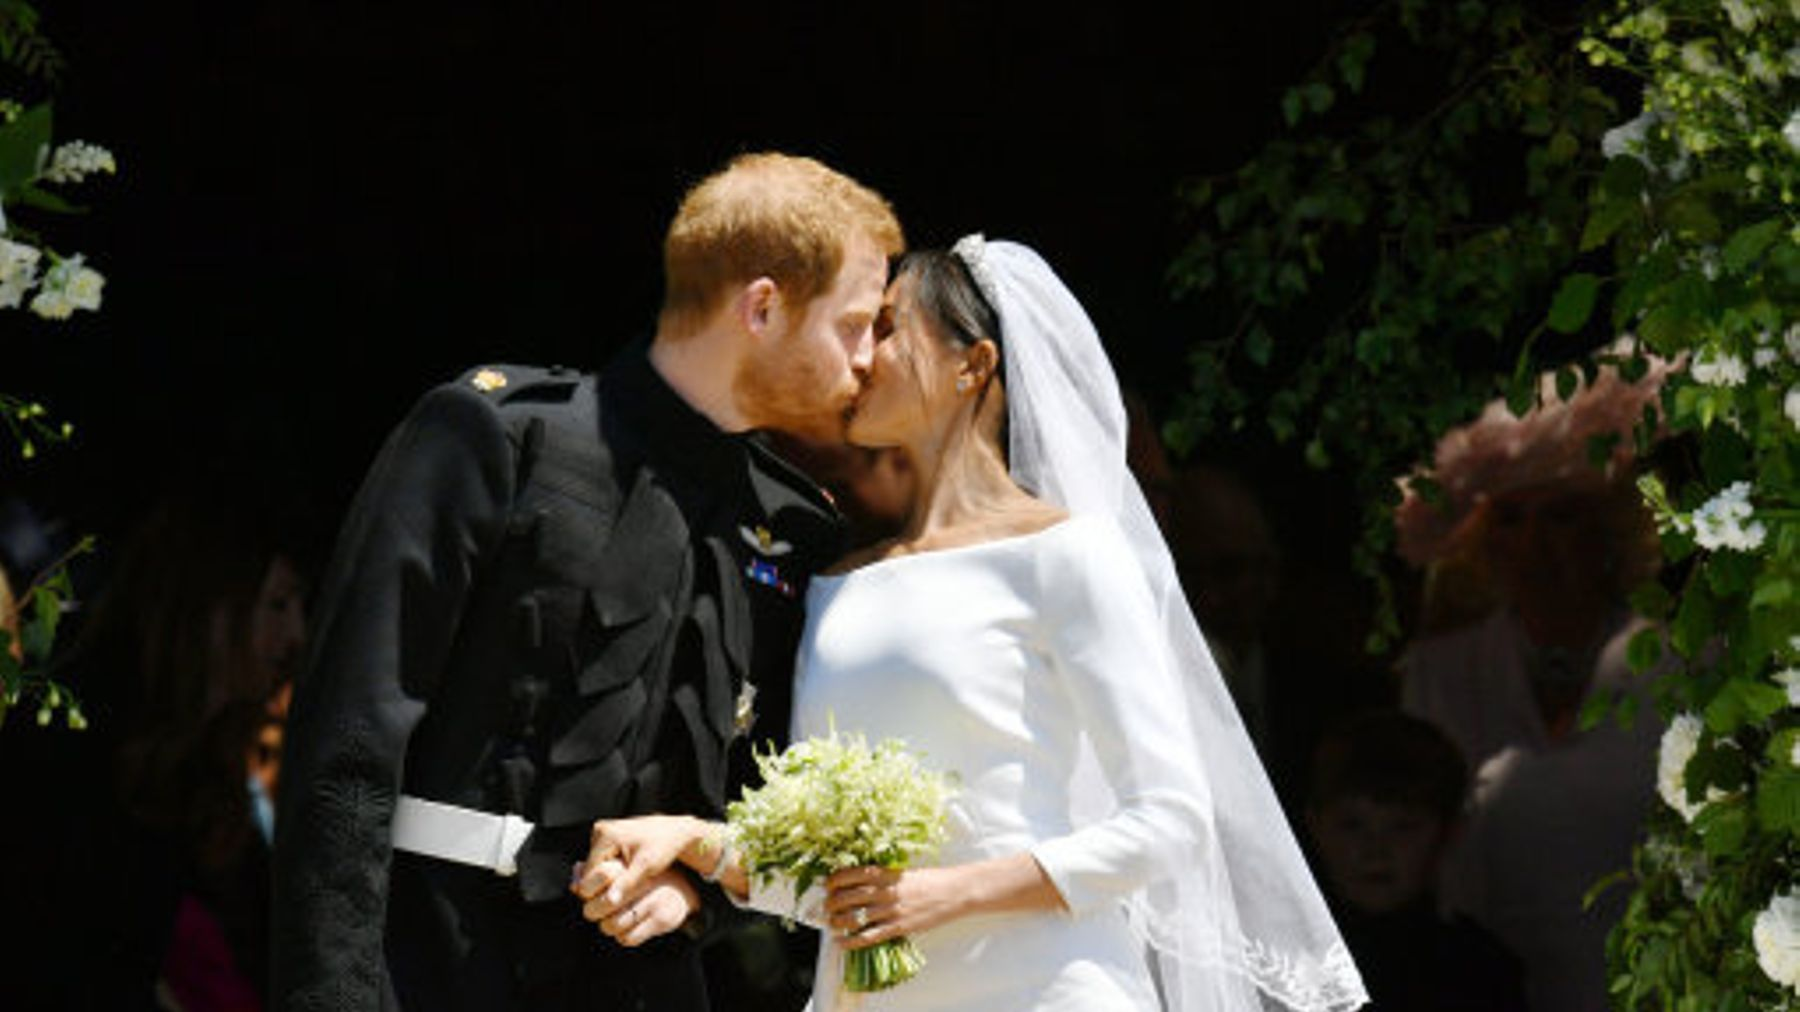 afd58a341ac94 Meghan Markle And Prince Harry's Private Wedding Photos Have Been Leaked.  The royal couple's official photographer Alexi Lubomirski was hacked